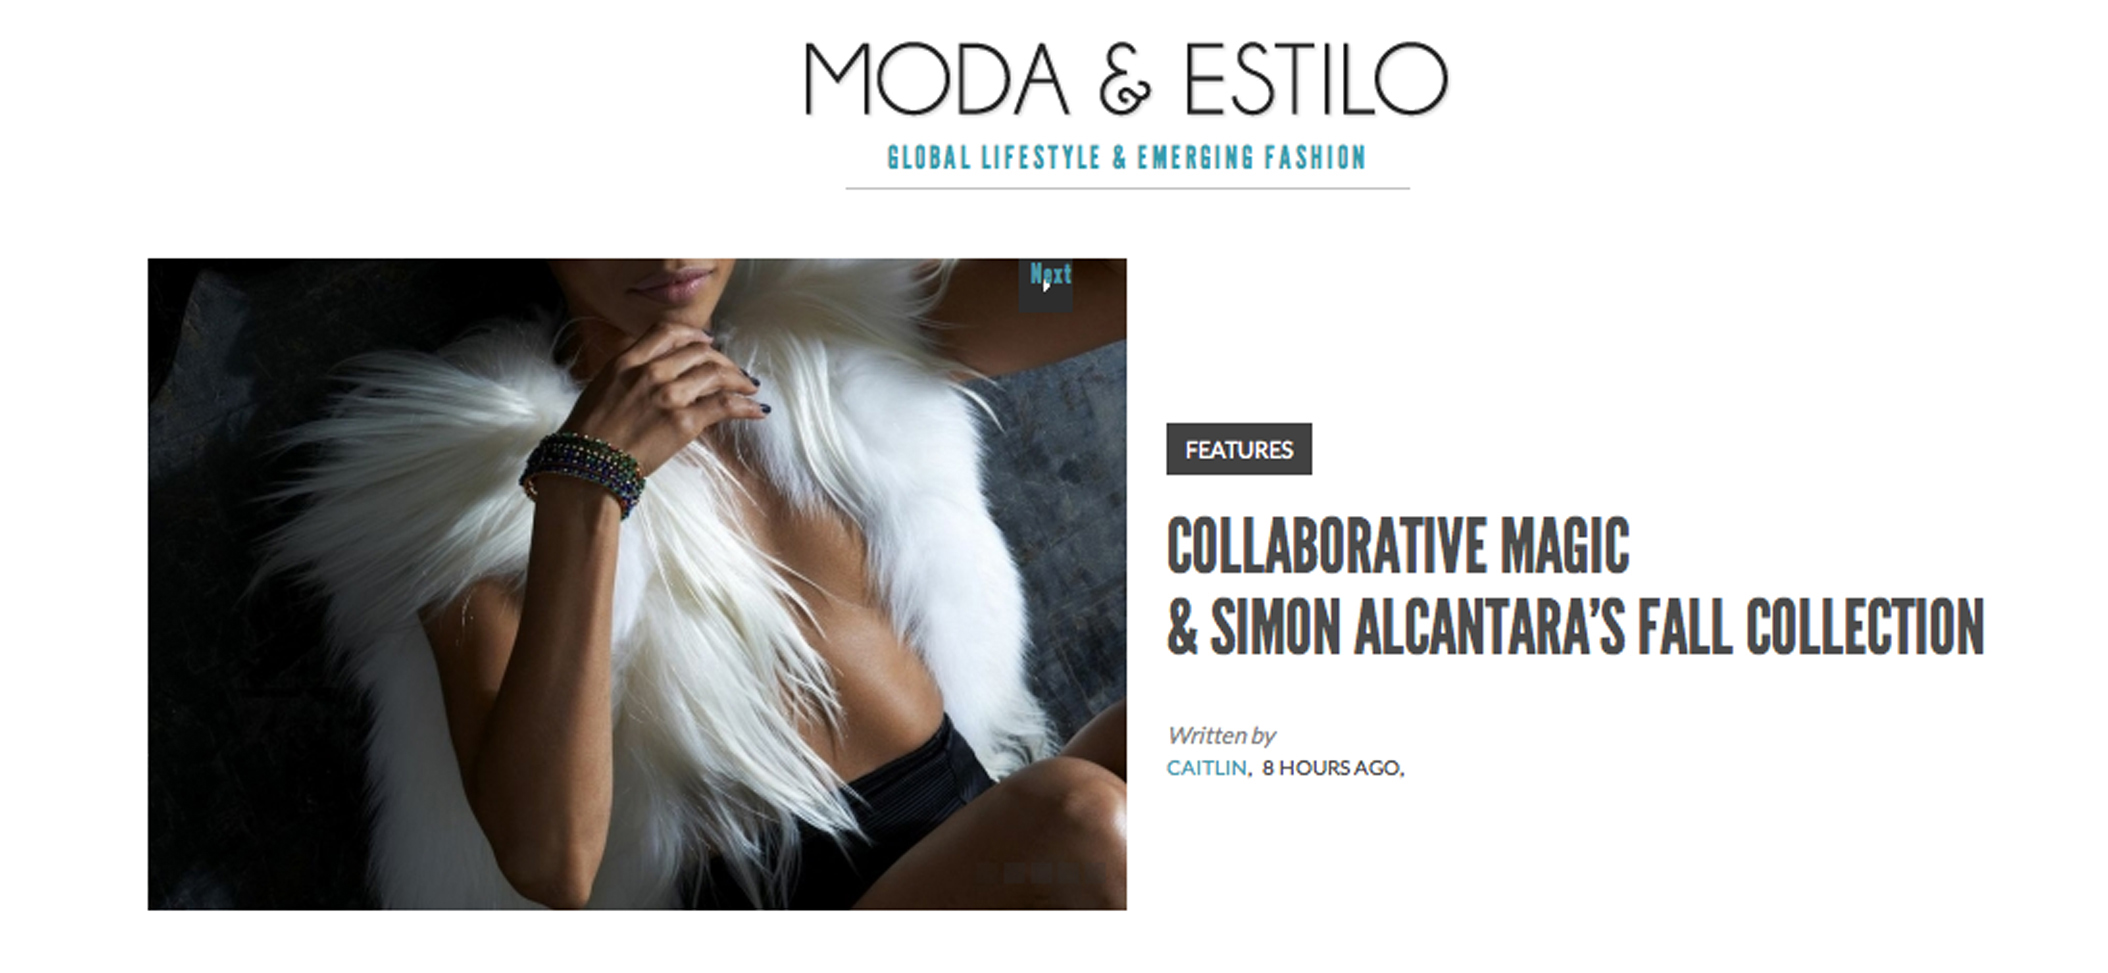 moda and estilo October5. 2013.jpeg